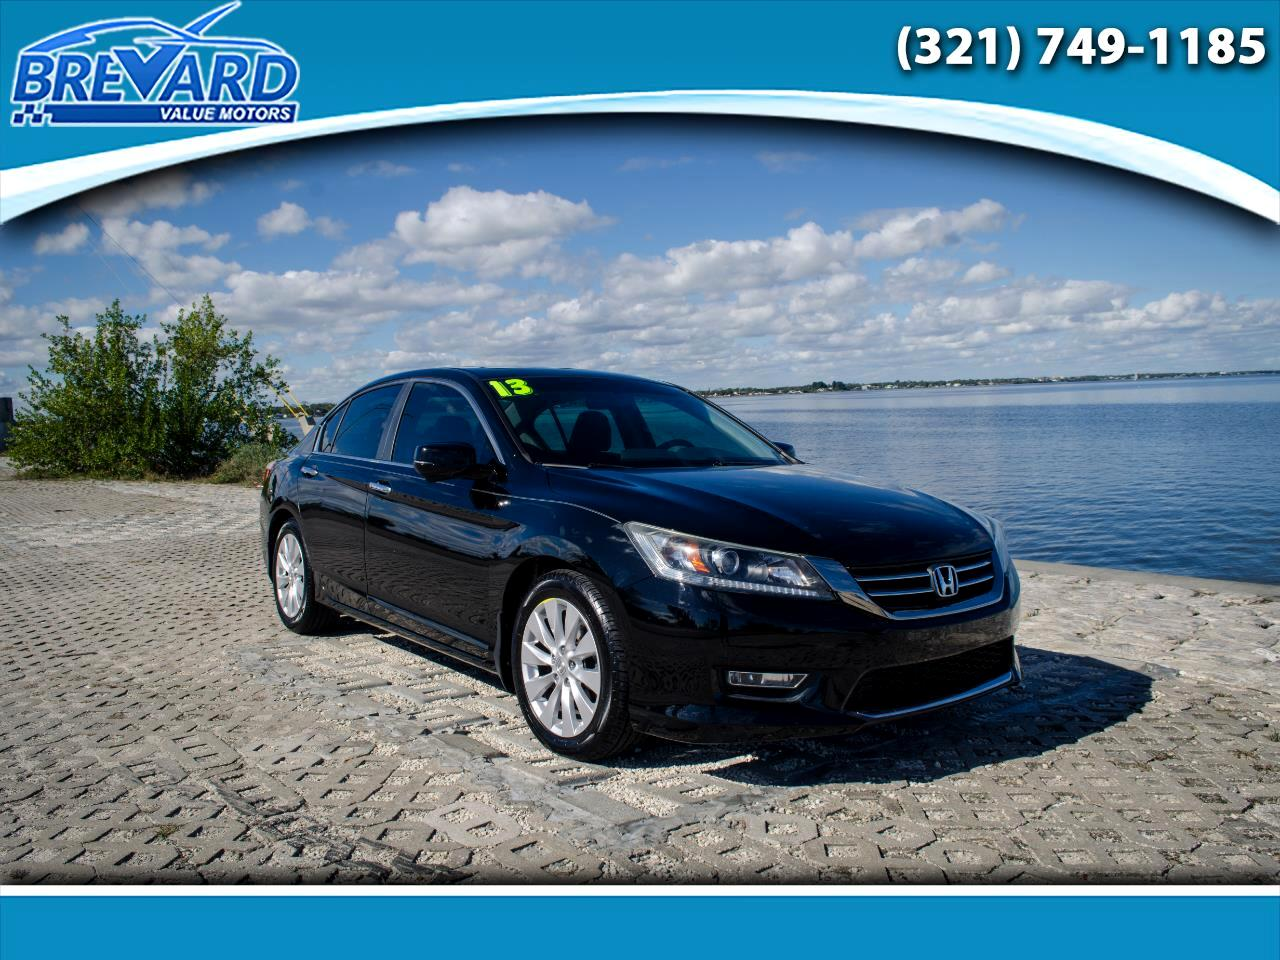 2013 Honda Accord EX Sedan CVT